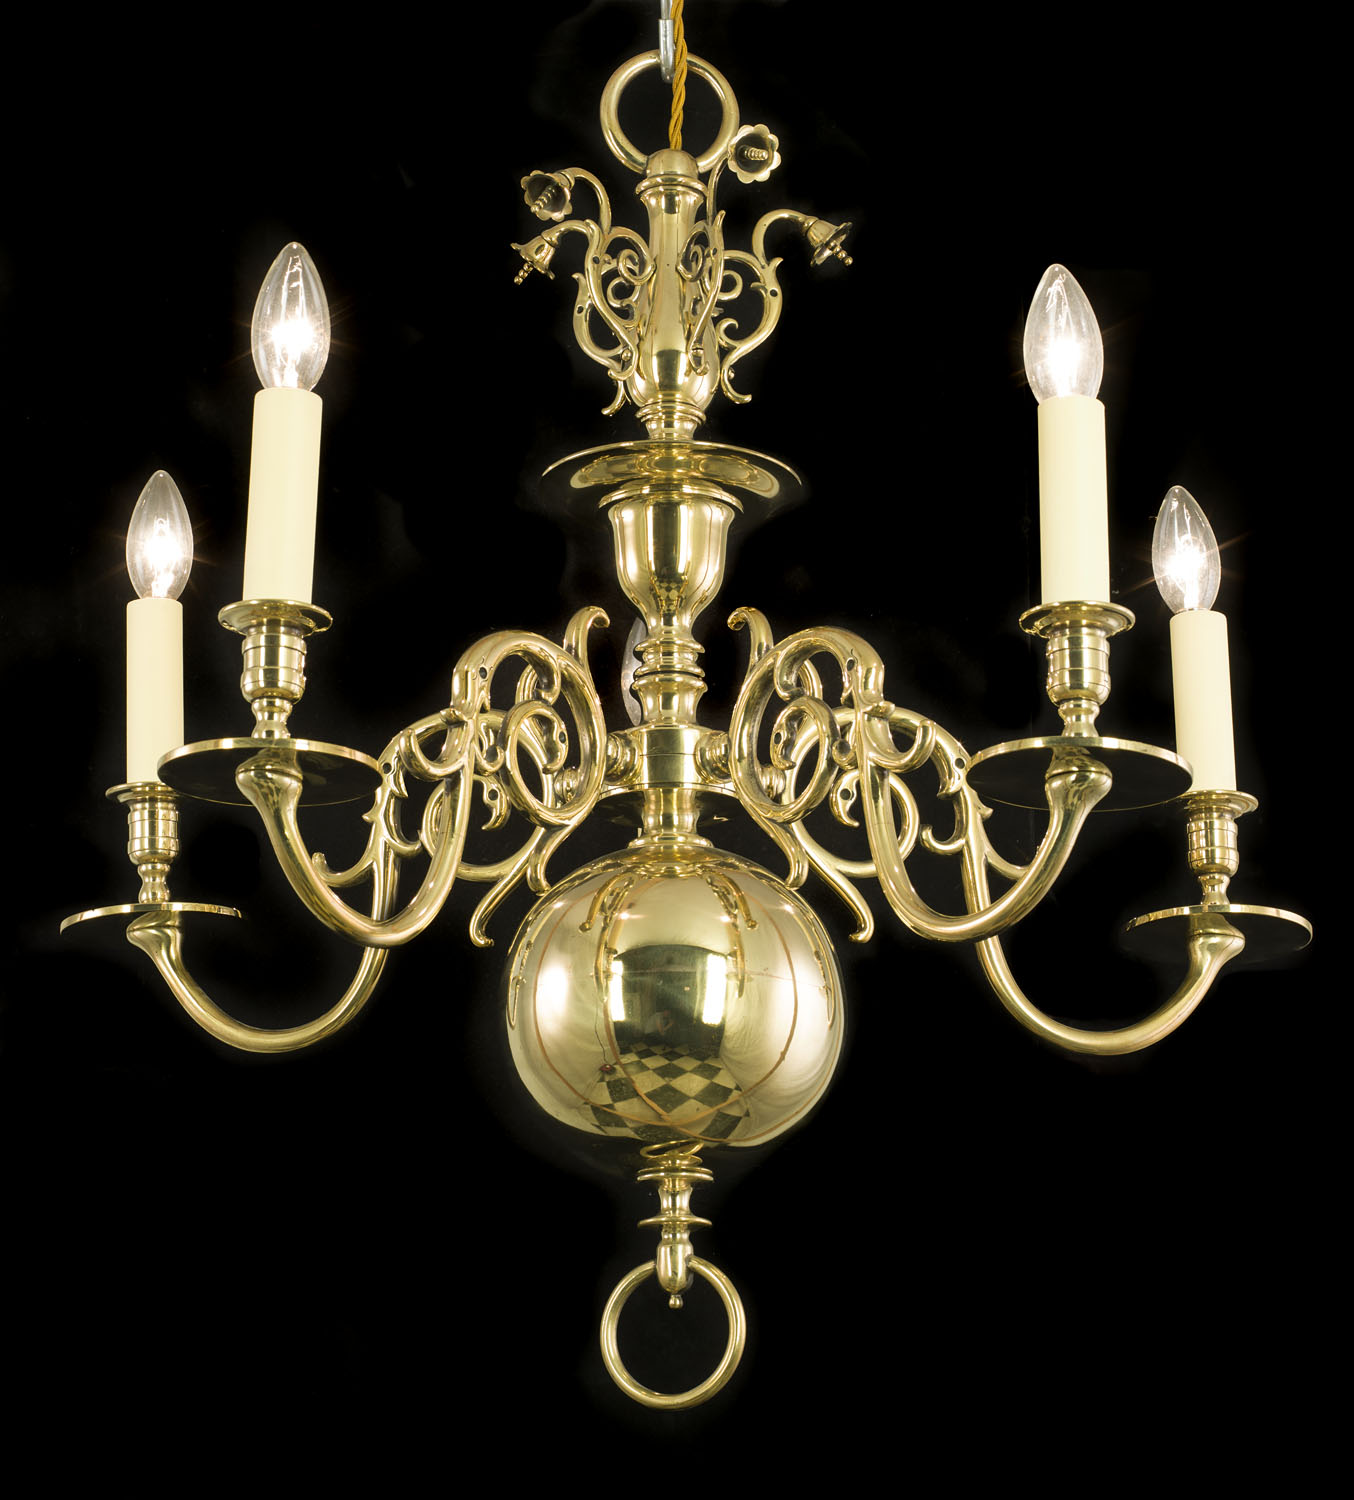 A 20th century Dutch style four branch brass chandelier